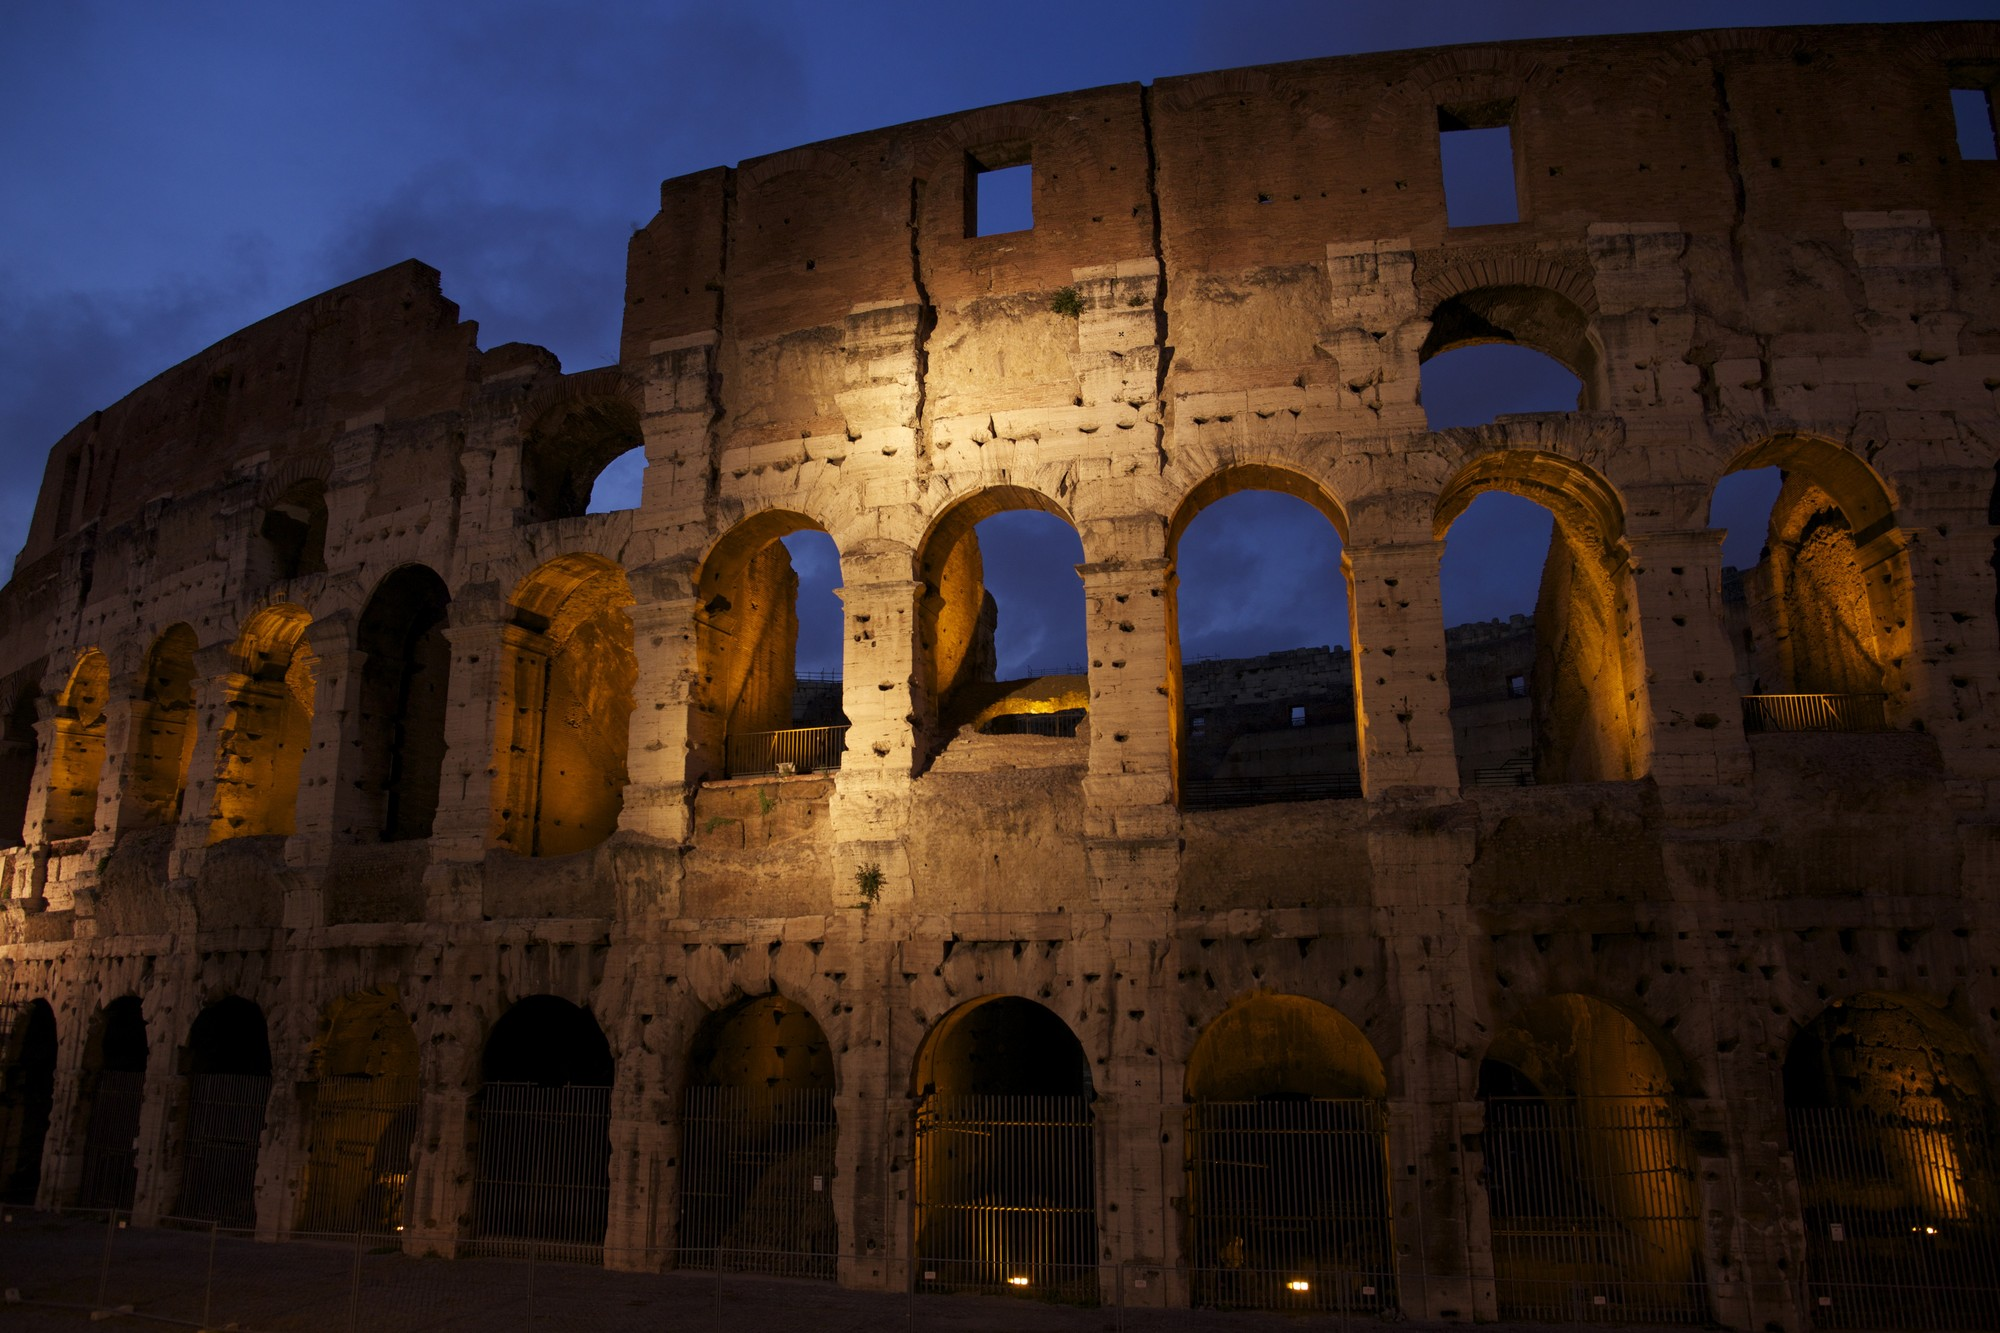 """NOVA's """"Building Wonders"""" Series to Investigate Ancient Architectural Mysteries, The ruins of the Colosseum still makes a powerful impression. Image © Providence Pictures"""